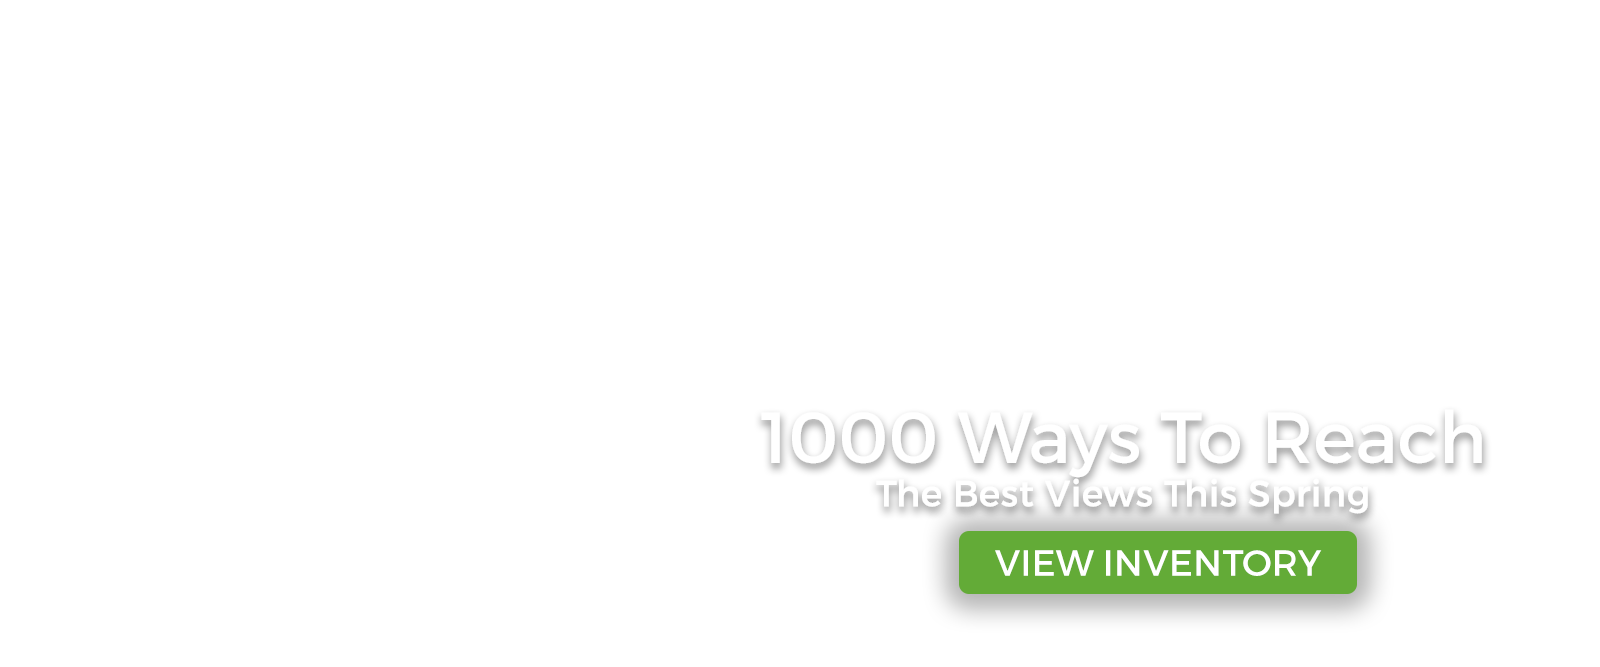 1000 ways to reach the best views at Larry H. Miller Used Car Supermarkets